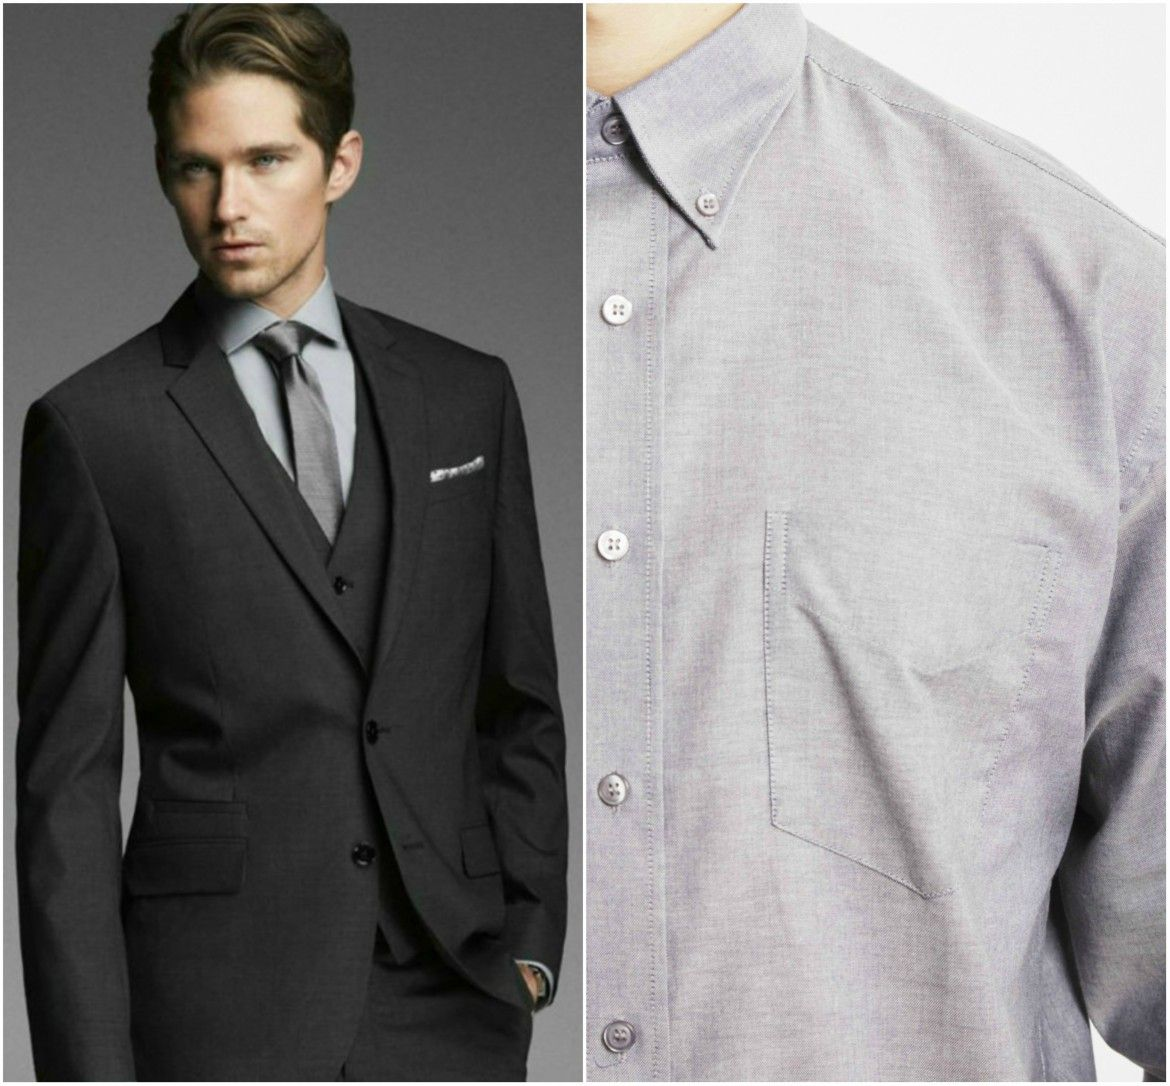 Shirt and Tie Combinations with a Black Suit | Black suits